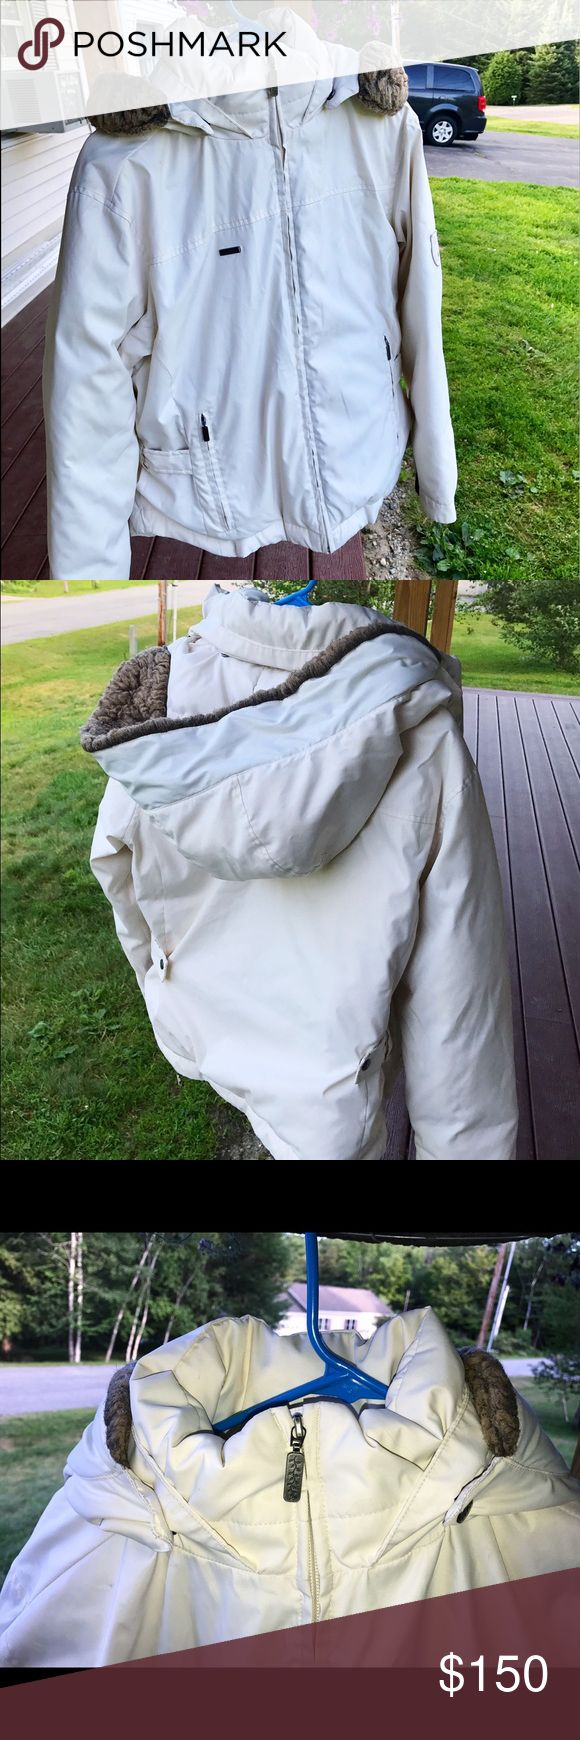 COLUMBIA DOWN JACKET  FINAL SALE ❗️ Lightly worn, fantastic condition, removable faux fur hood, very comfy down feathers, w/ additional lining around cuffs & neckline. White/ivory shell, with beige interior :) Too big/wide for my long torso! Make an offer  Columbia Jackets & Coats Puffers